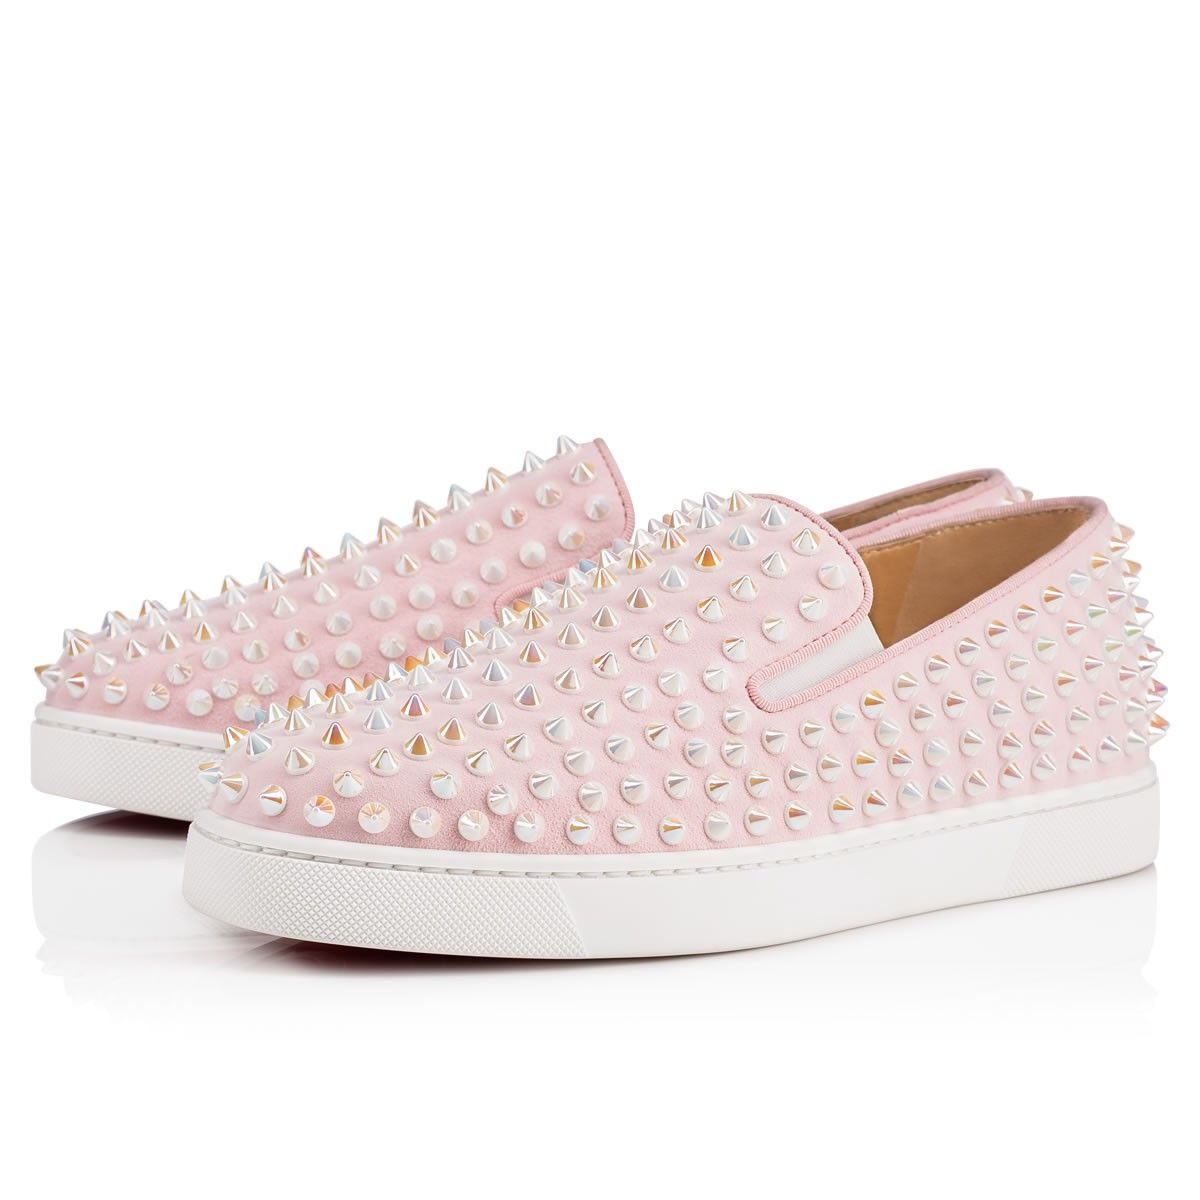 86c79c1b69f5 Discover more Women Shoes by Christian Louboutin. Perfect your leisure  looks this season with